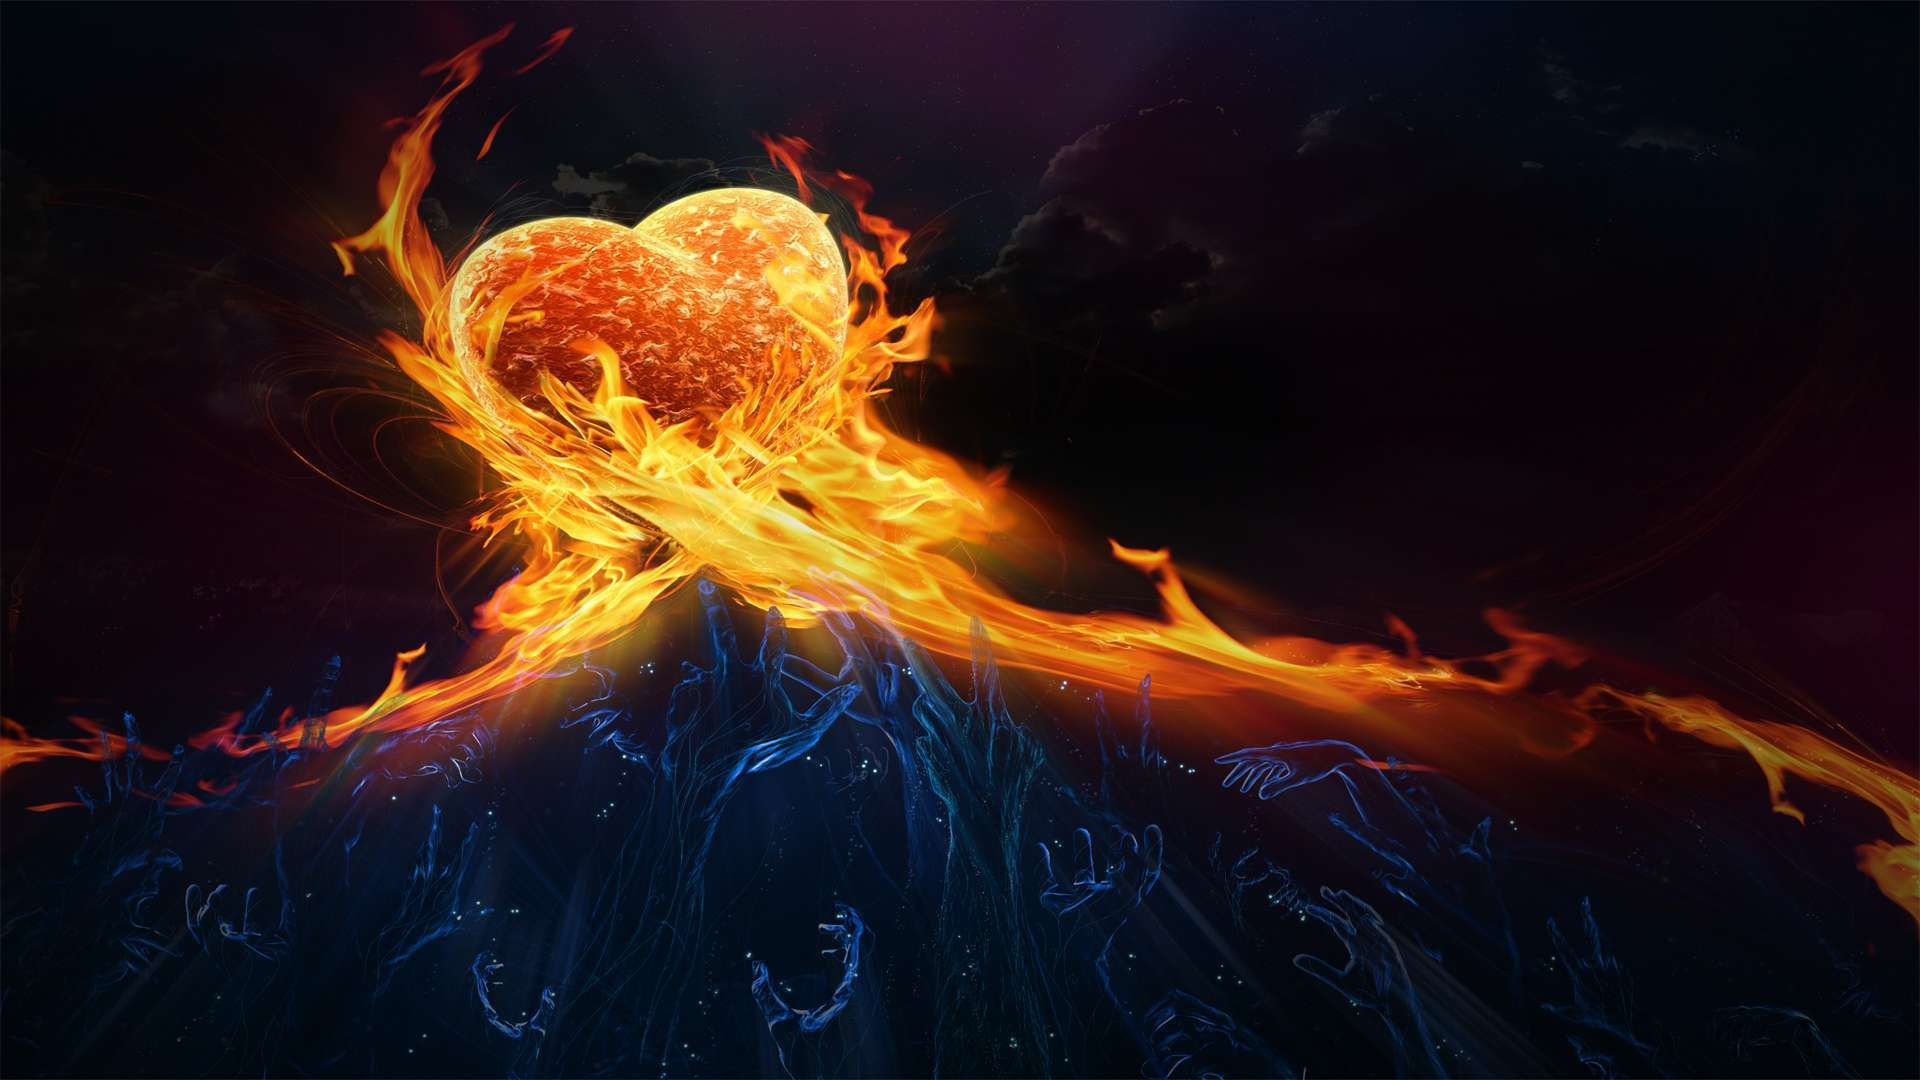 Burning Love Hd Wallpapers: Sony Xperia Z1 Pact Wallpaper Size